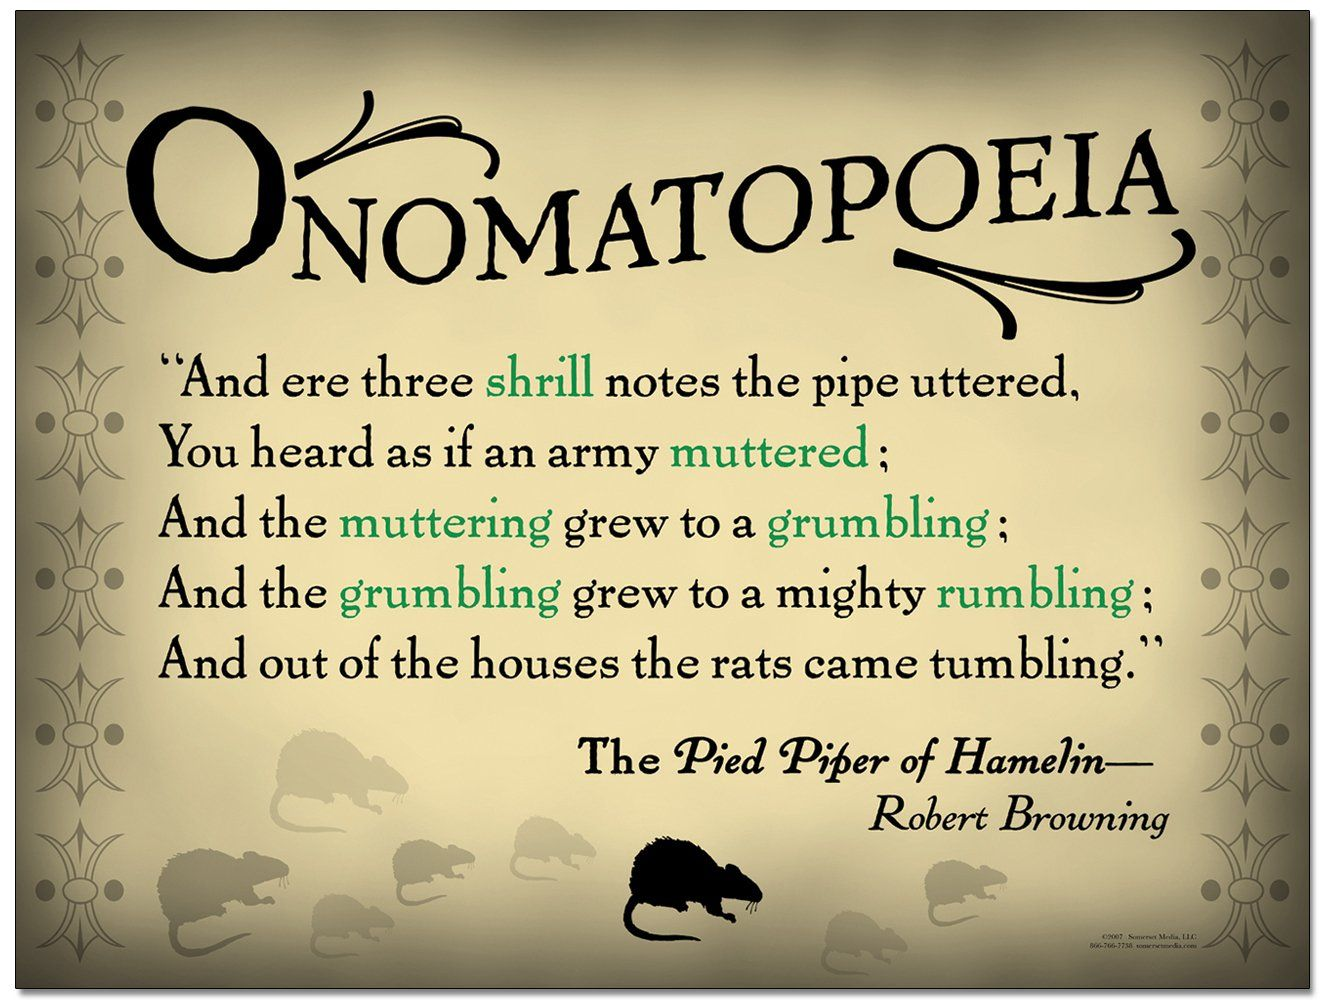 Onomatopoeia A Quote From The Pied Piper Of Hamelin By Robert